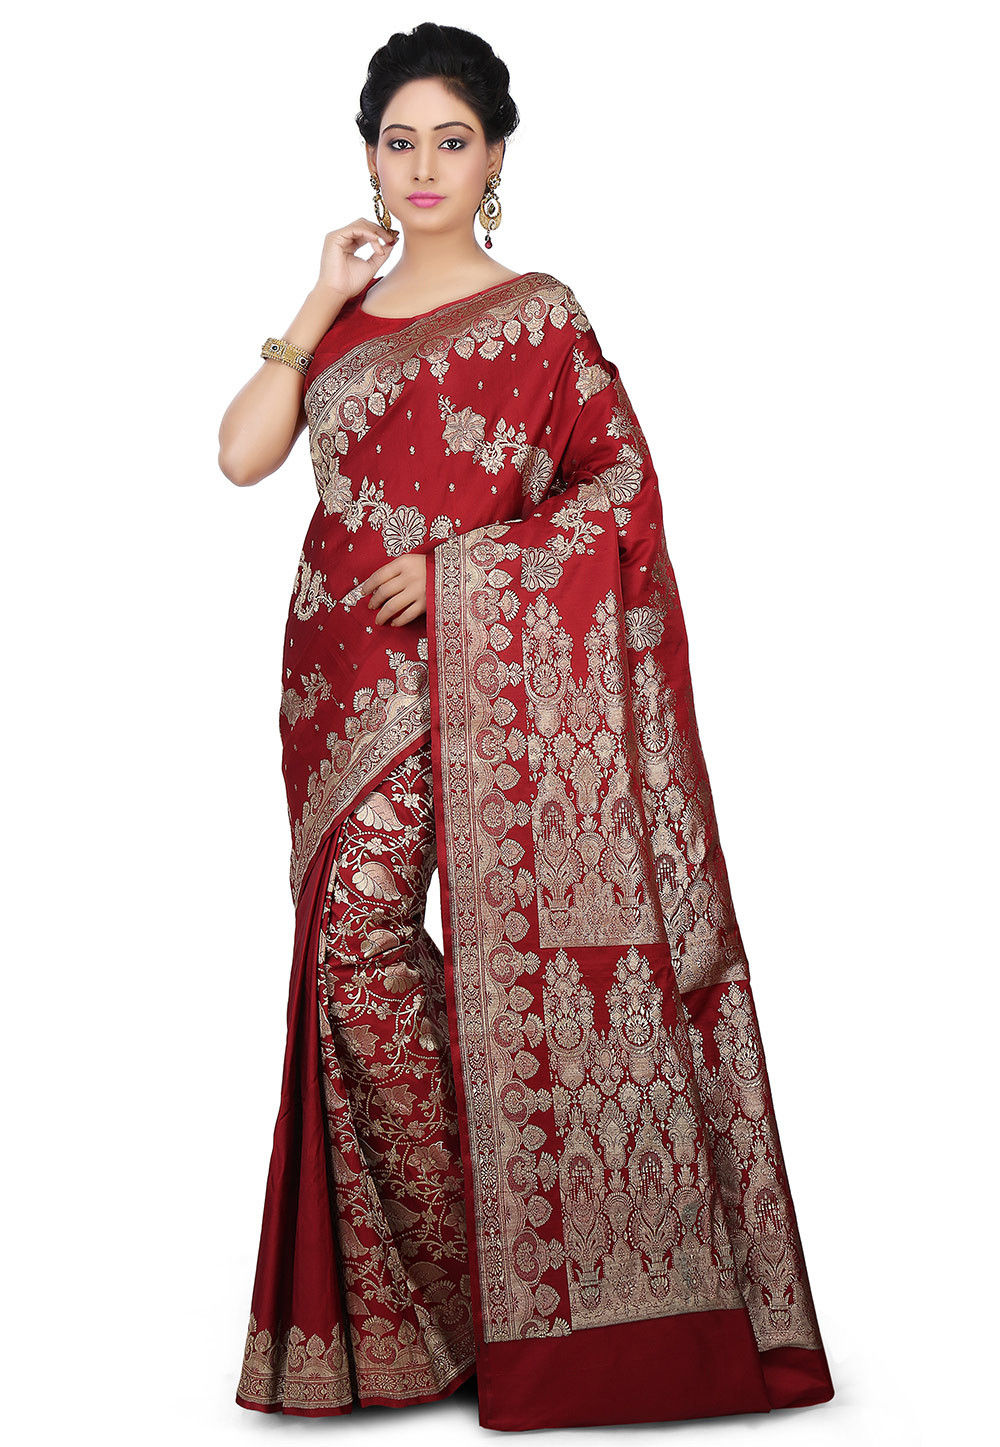 Pure Satin Silk Saree in Maroon